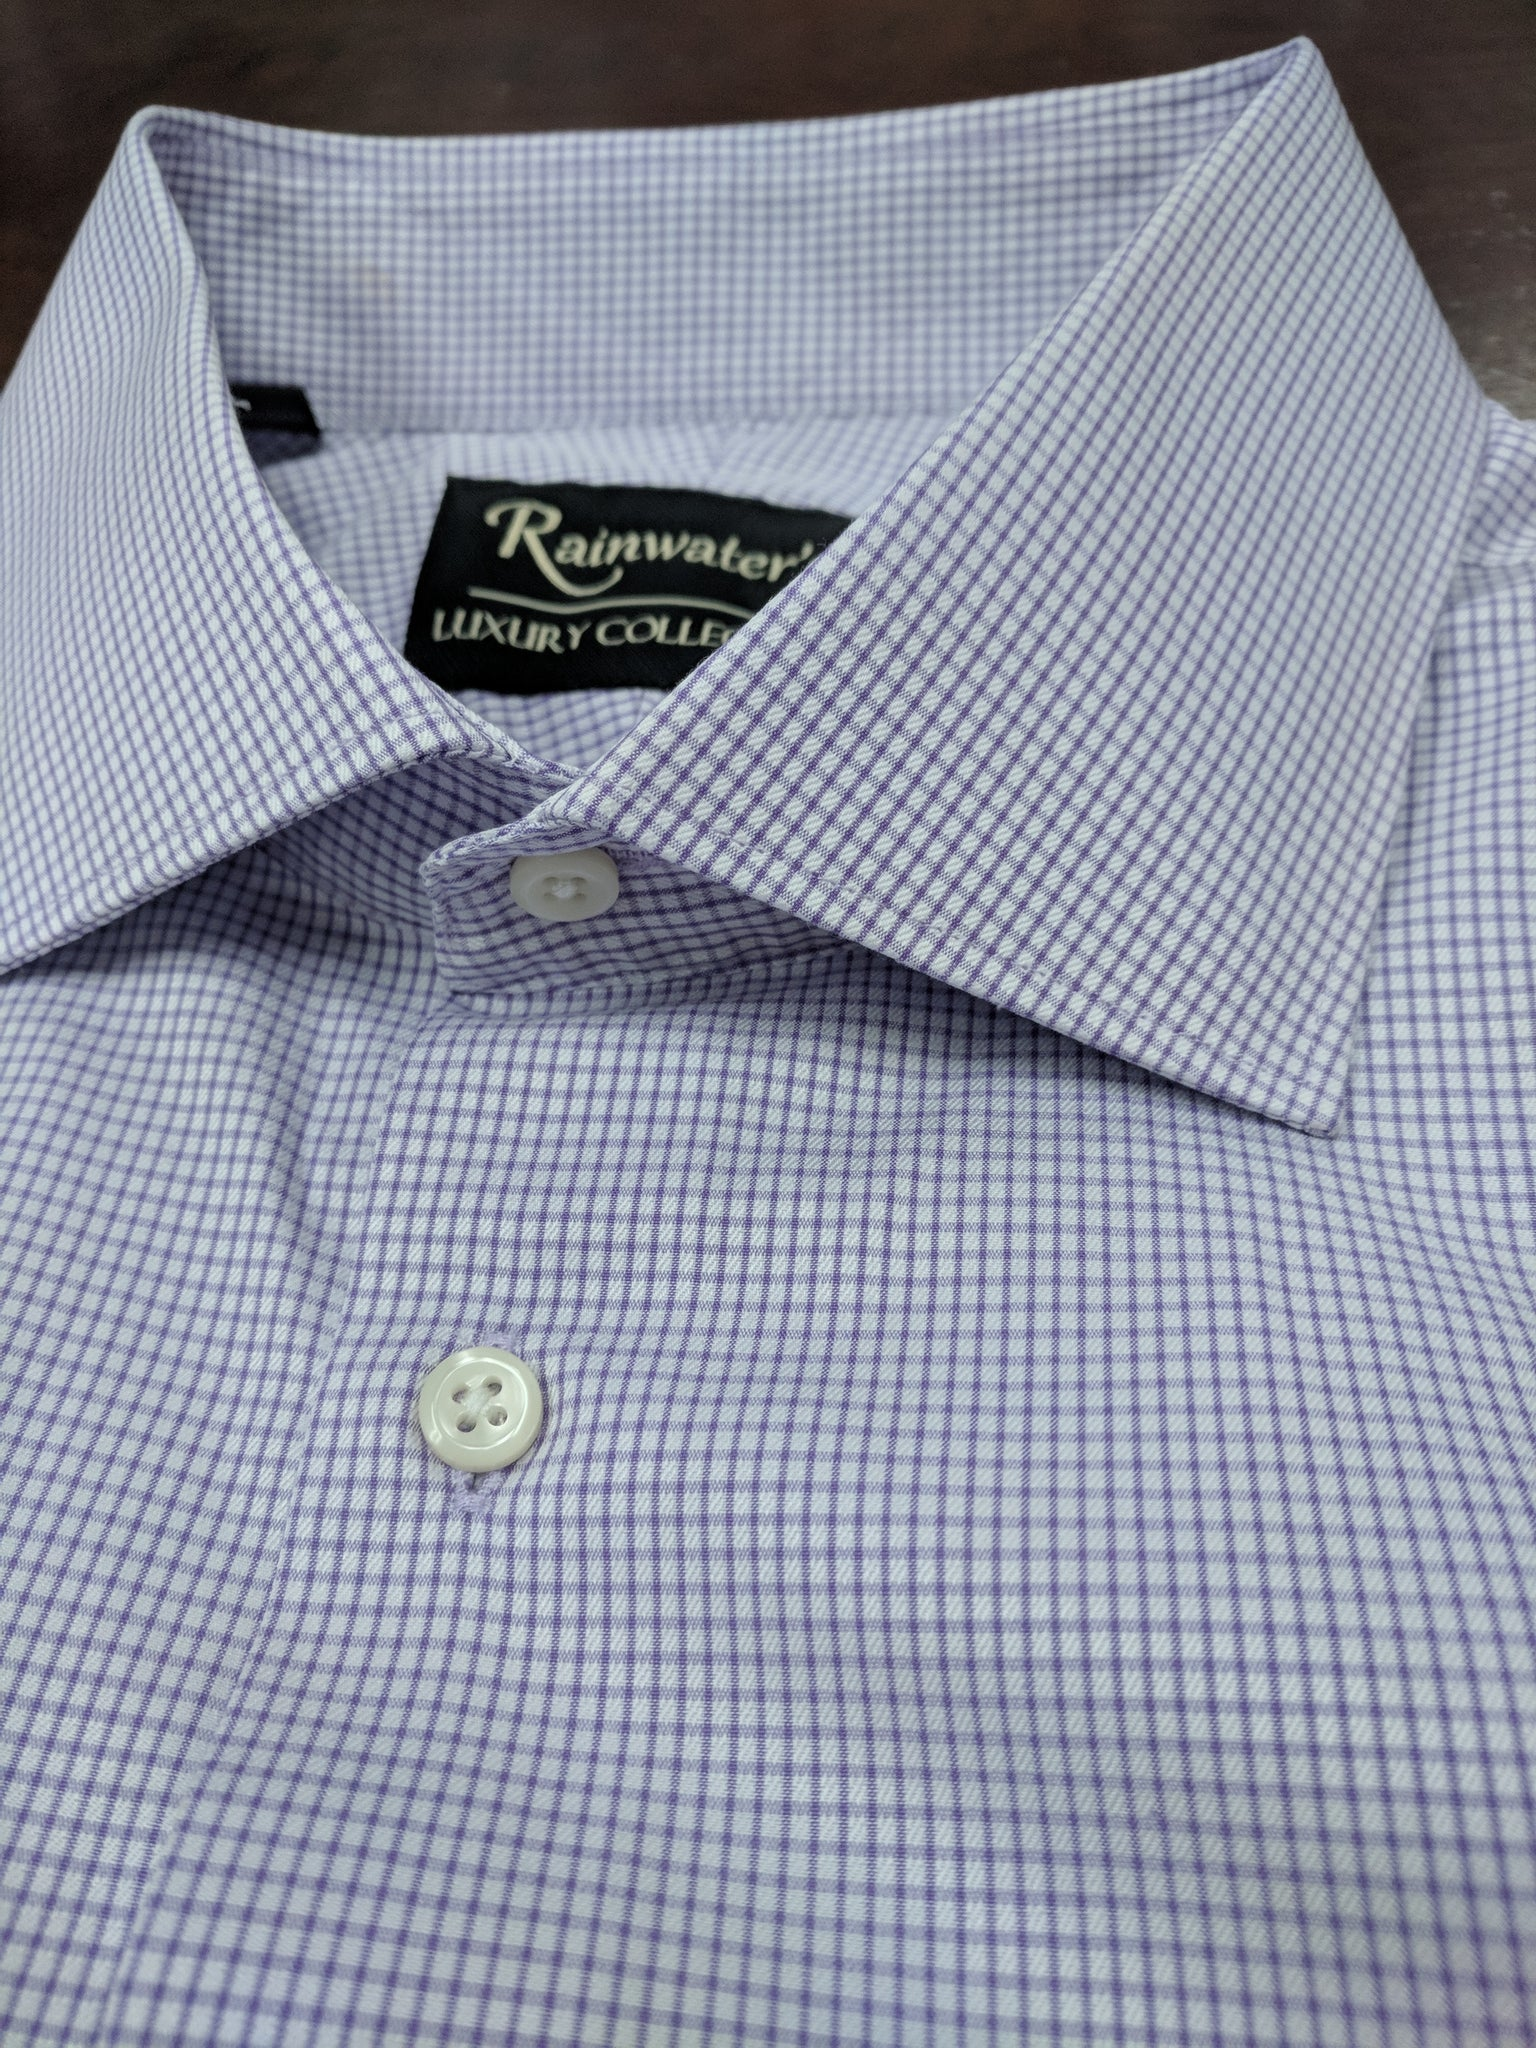 Rainwater's Lavender Mini Check Dress Shirt - Rainwater's Men's Clothing and Tuxedo Rental